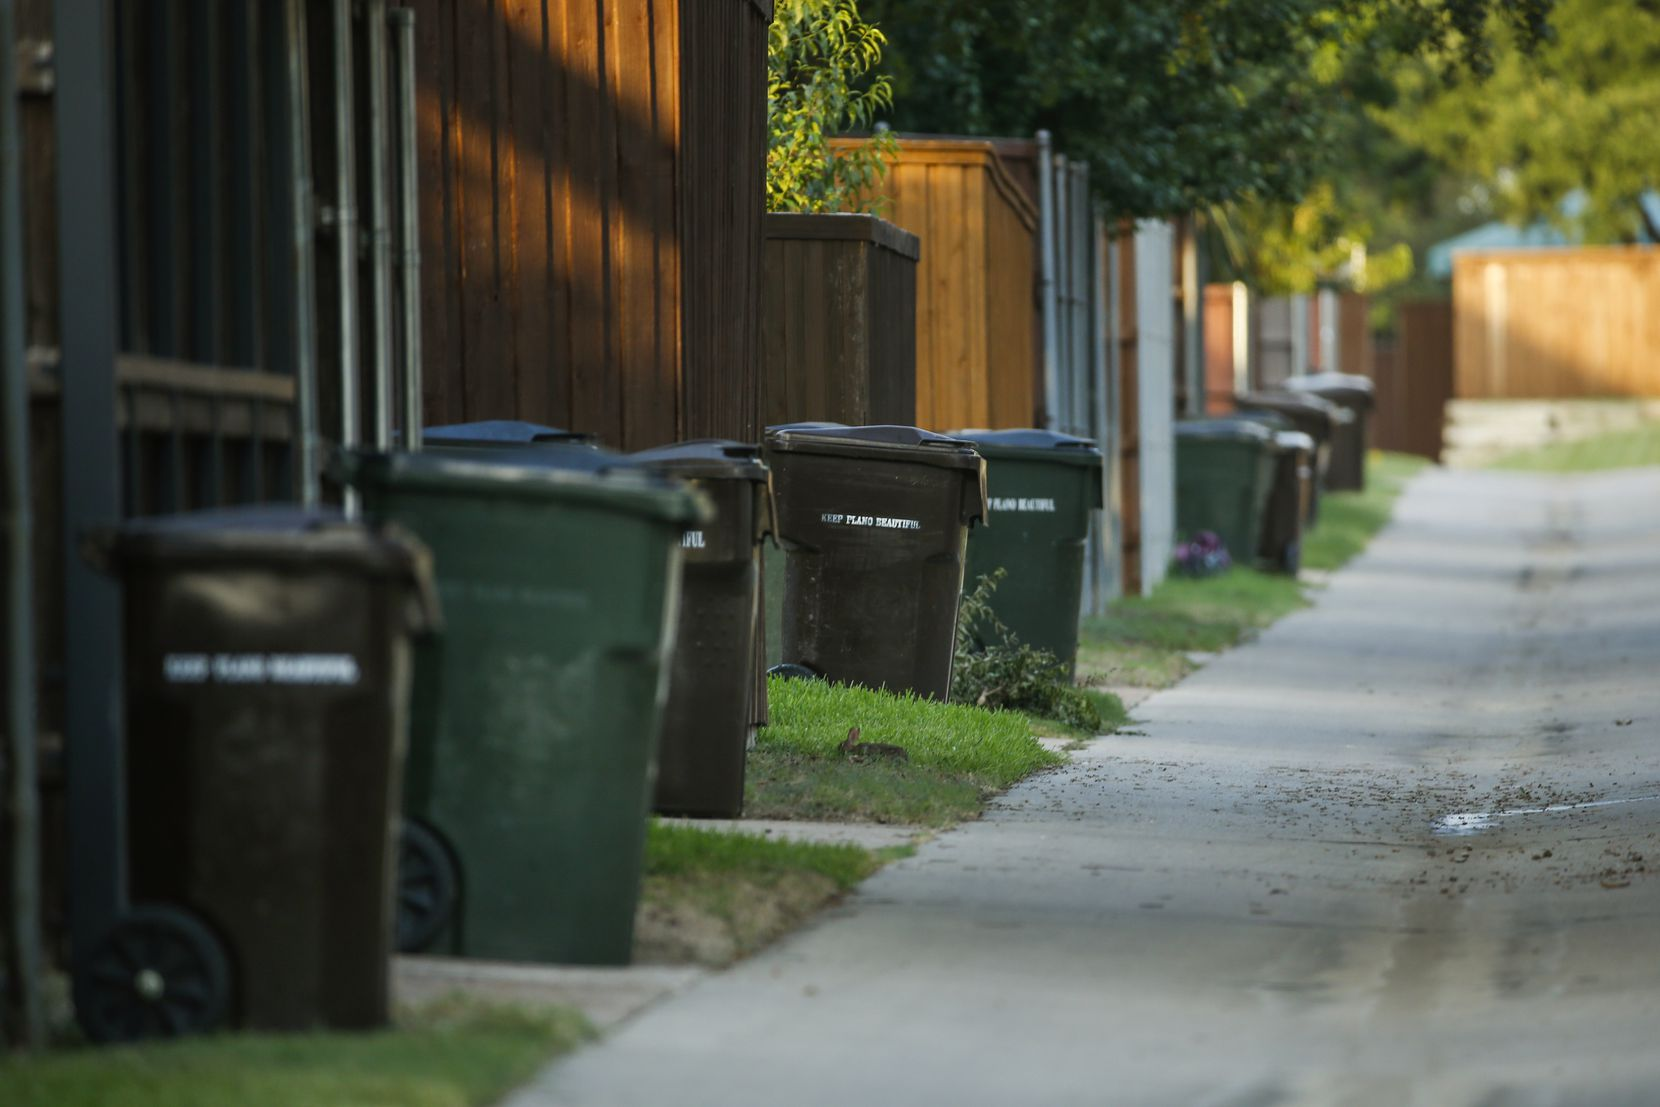 Trash cans line an alley in Plano. With less food refuse available at area restaurants, rats are turning more often to residential areas to find food, water and shelter.